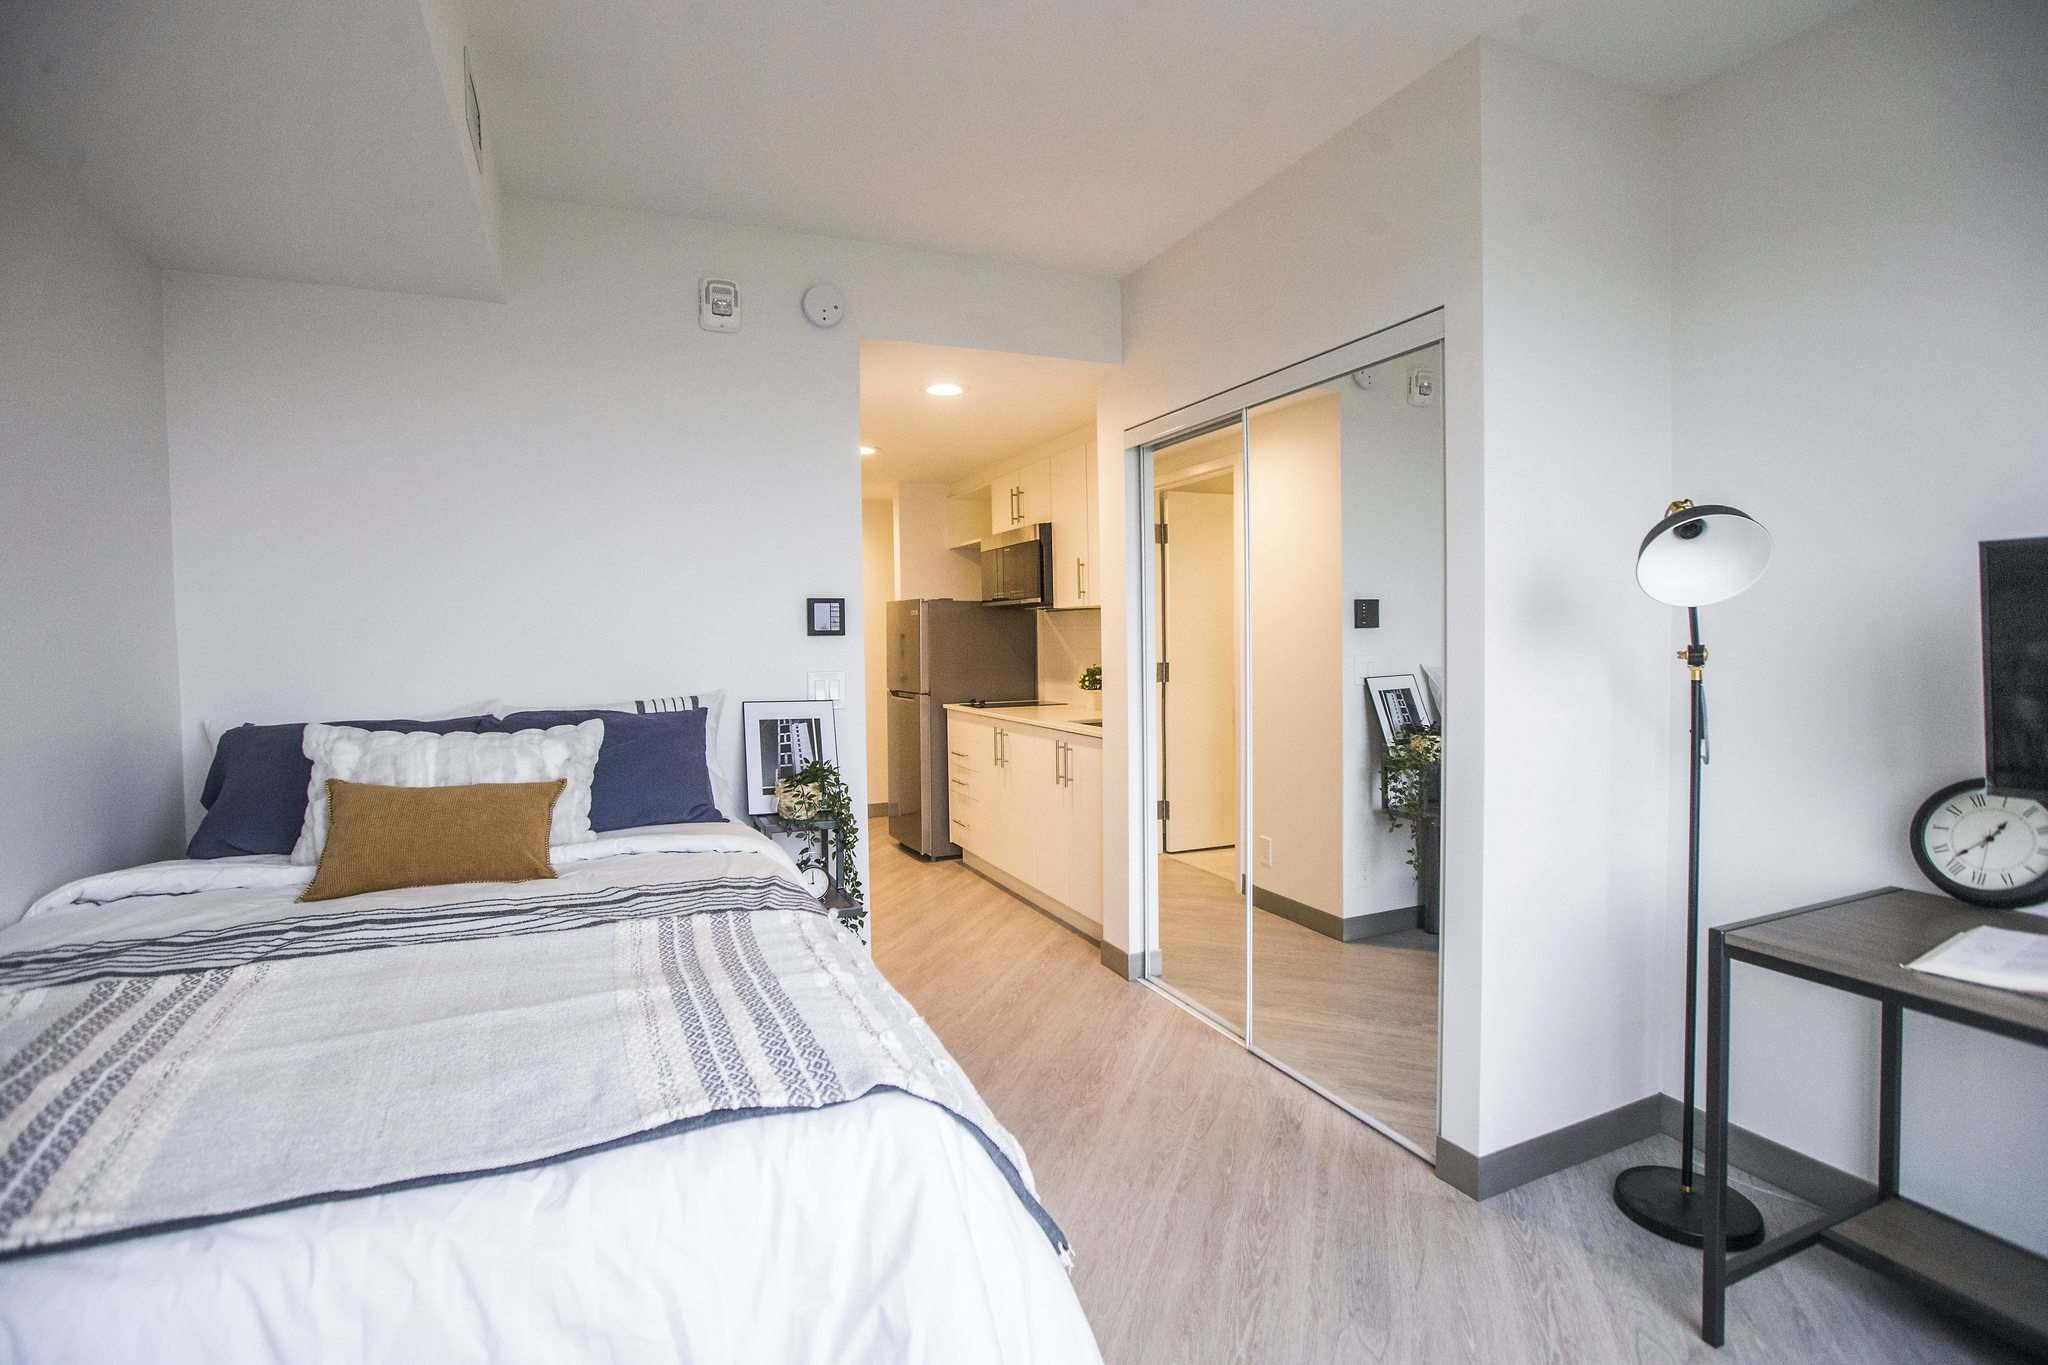 The complex includes 368 student-oriented, furnished rental units, with a total of 570 beds in single, double and four-person suites.